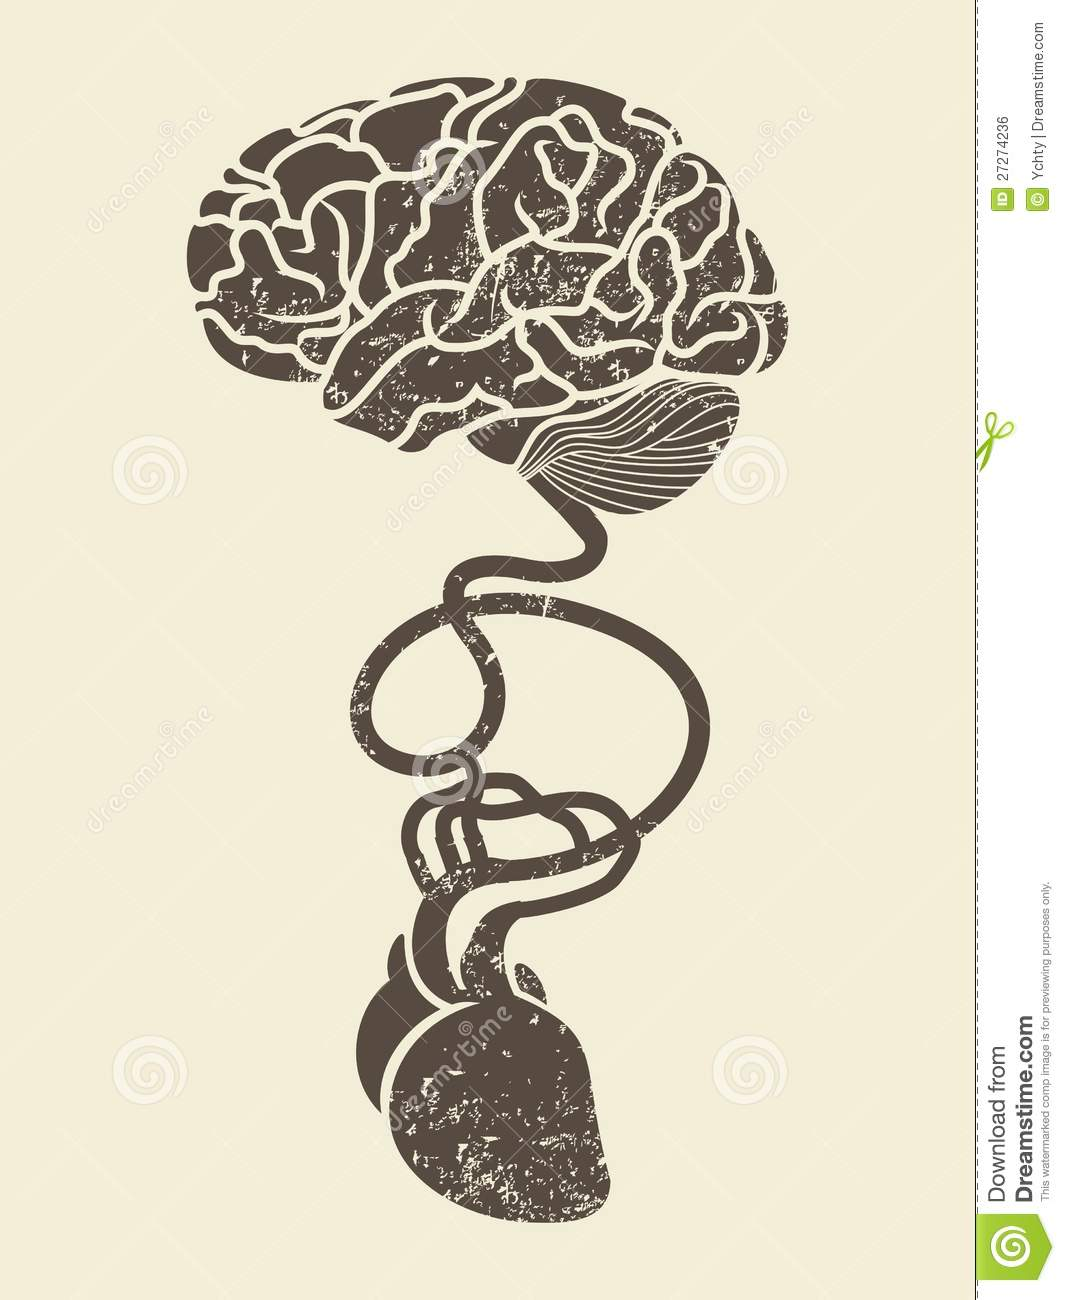 Conceptual image of brain and heart connected toge